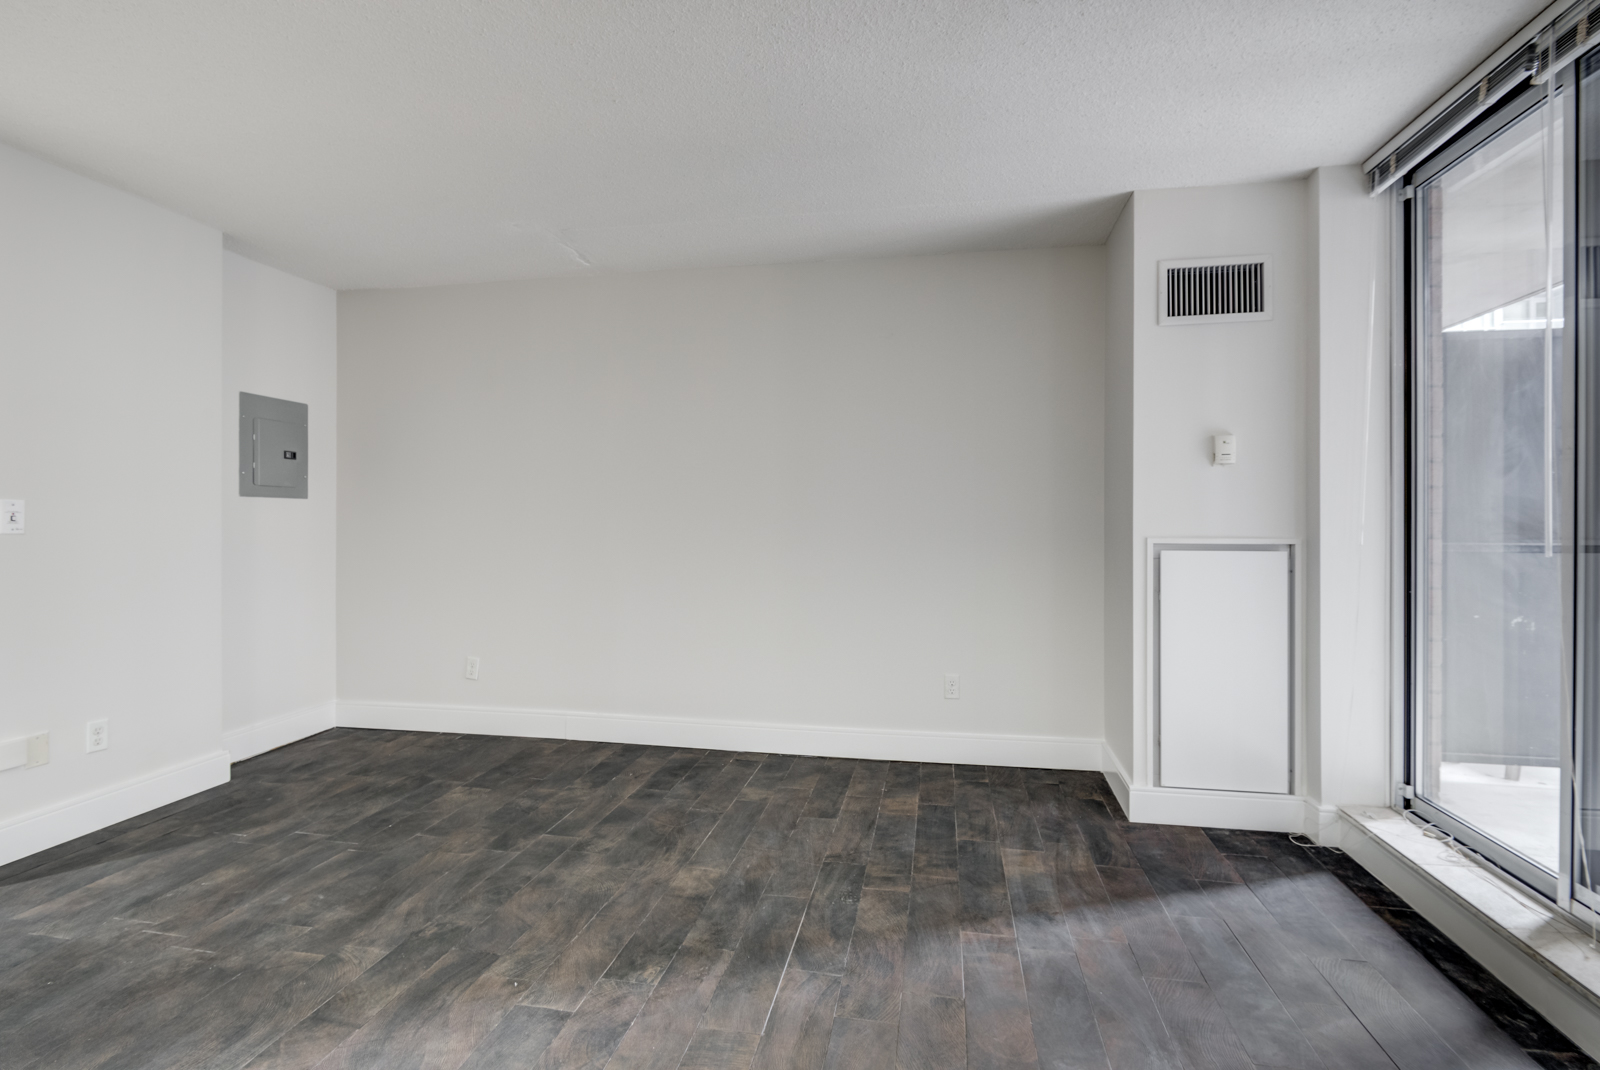 View of 140 Simcoe St E Unit 921 bedroom area with no bed.